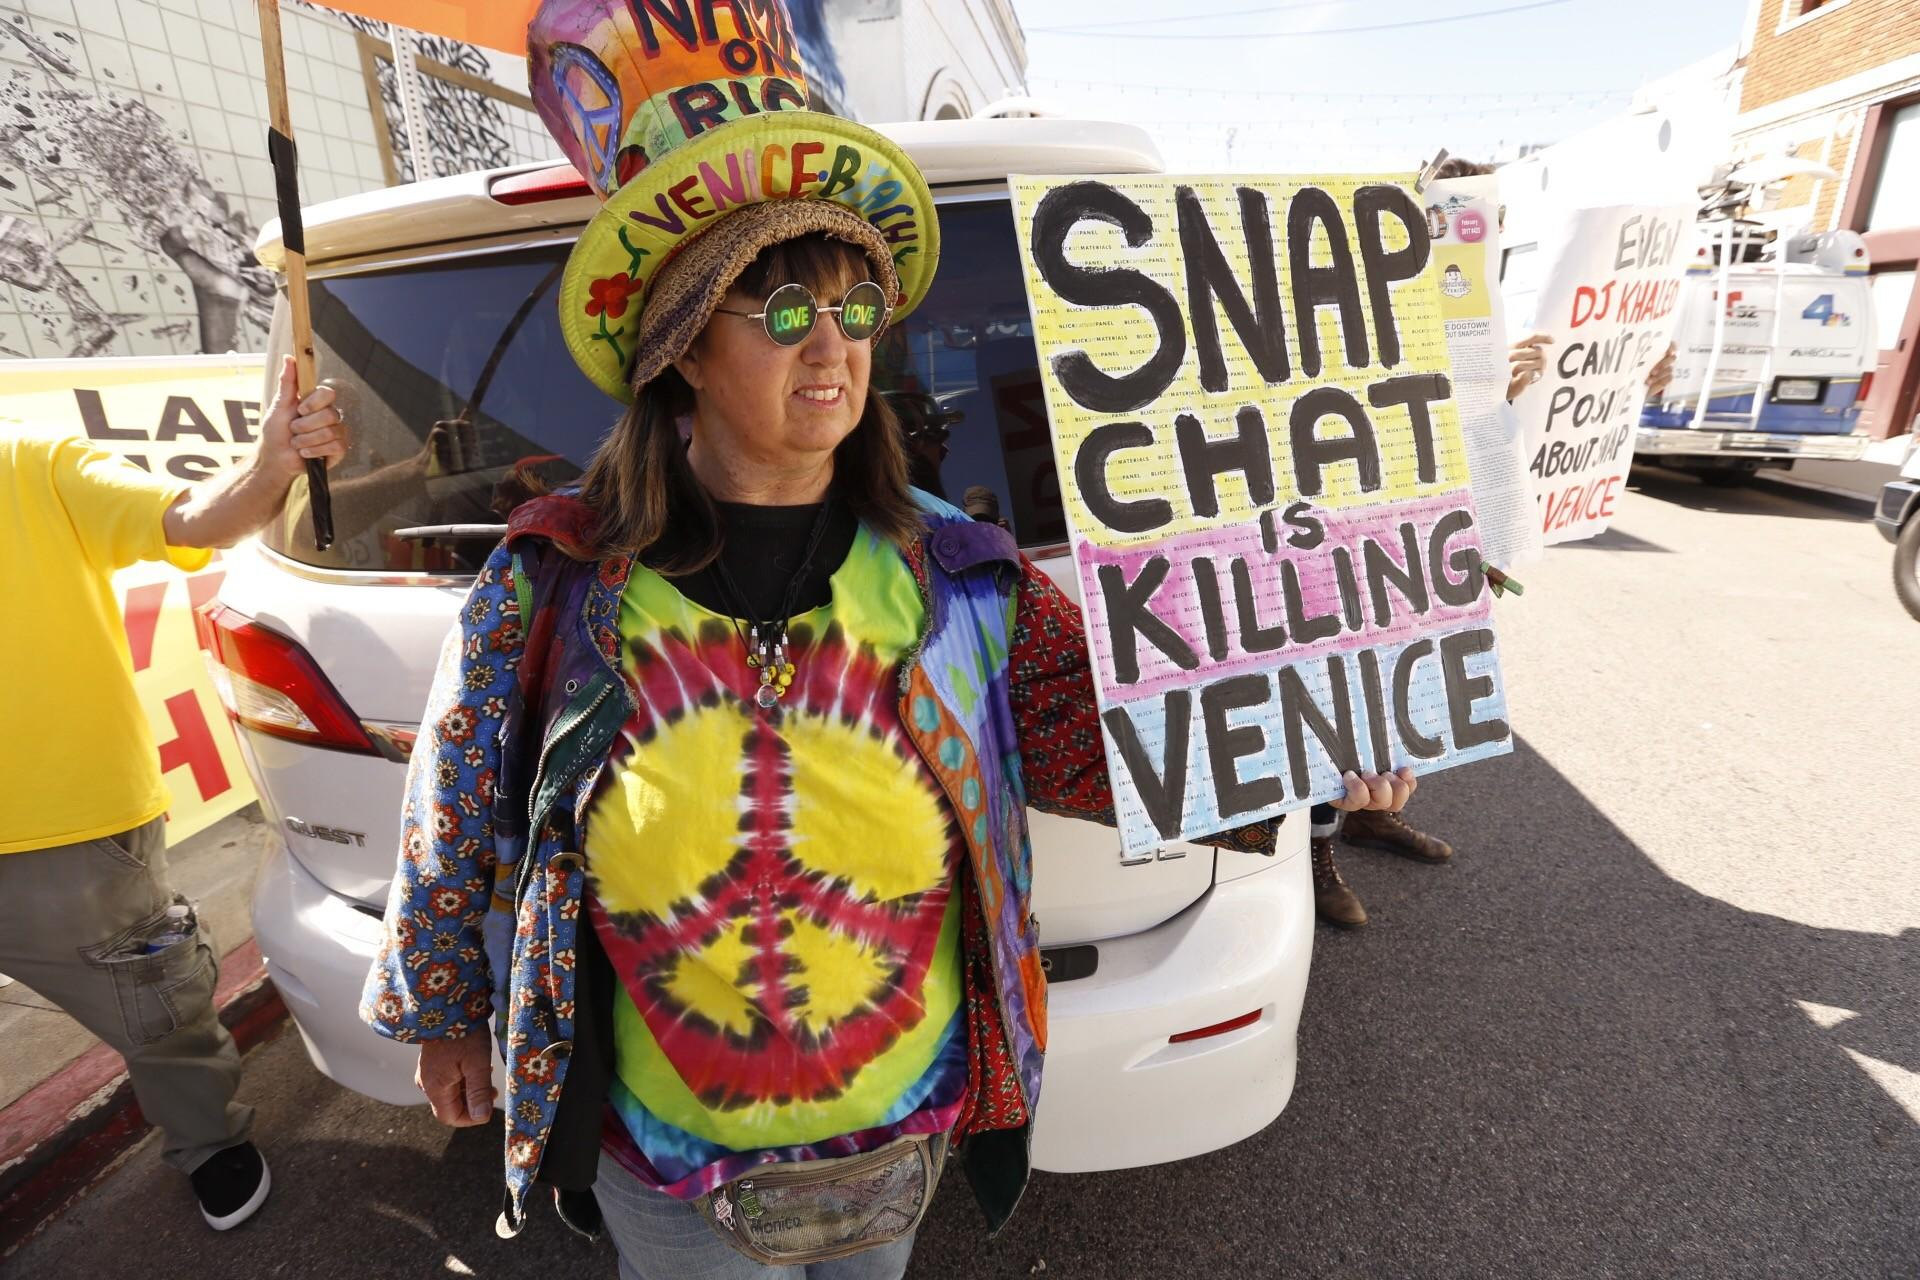 Vivianne Robinson protests near Snap's offices. (Al Seib / Los Angeles Times)